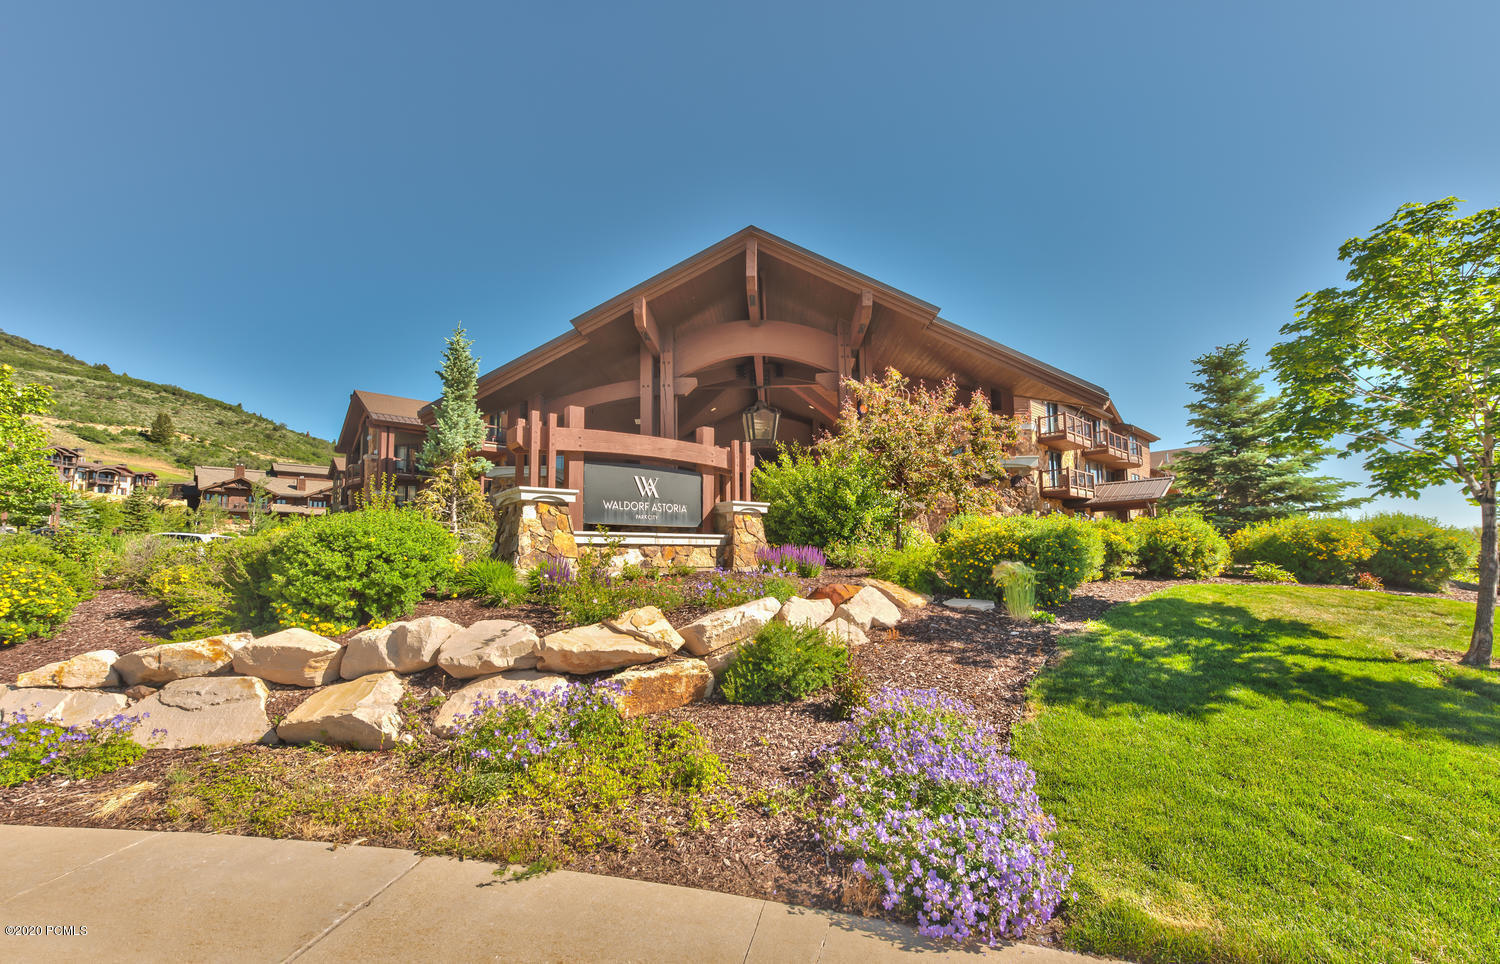 2100 Frostwood Boulevard, Park City, Utah 84098, 3 Bedrooms Bedrooms, ,4 BathroomsBathrooms,Condominium,For Sale,Frostwood,12003672